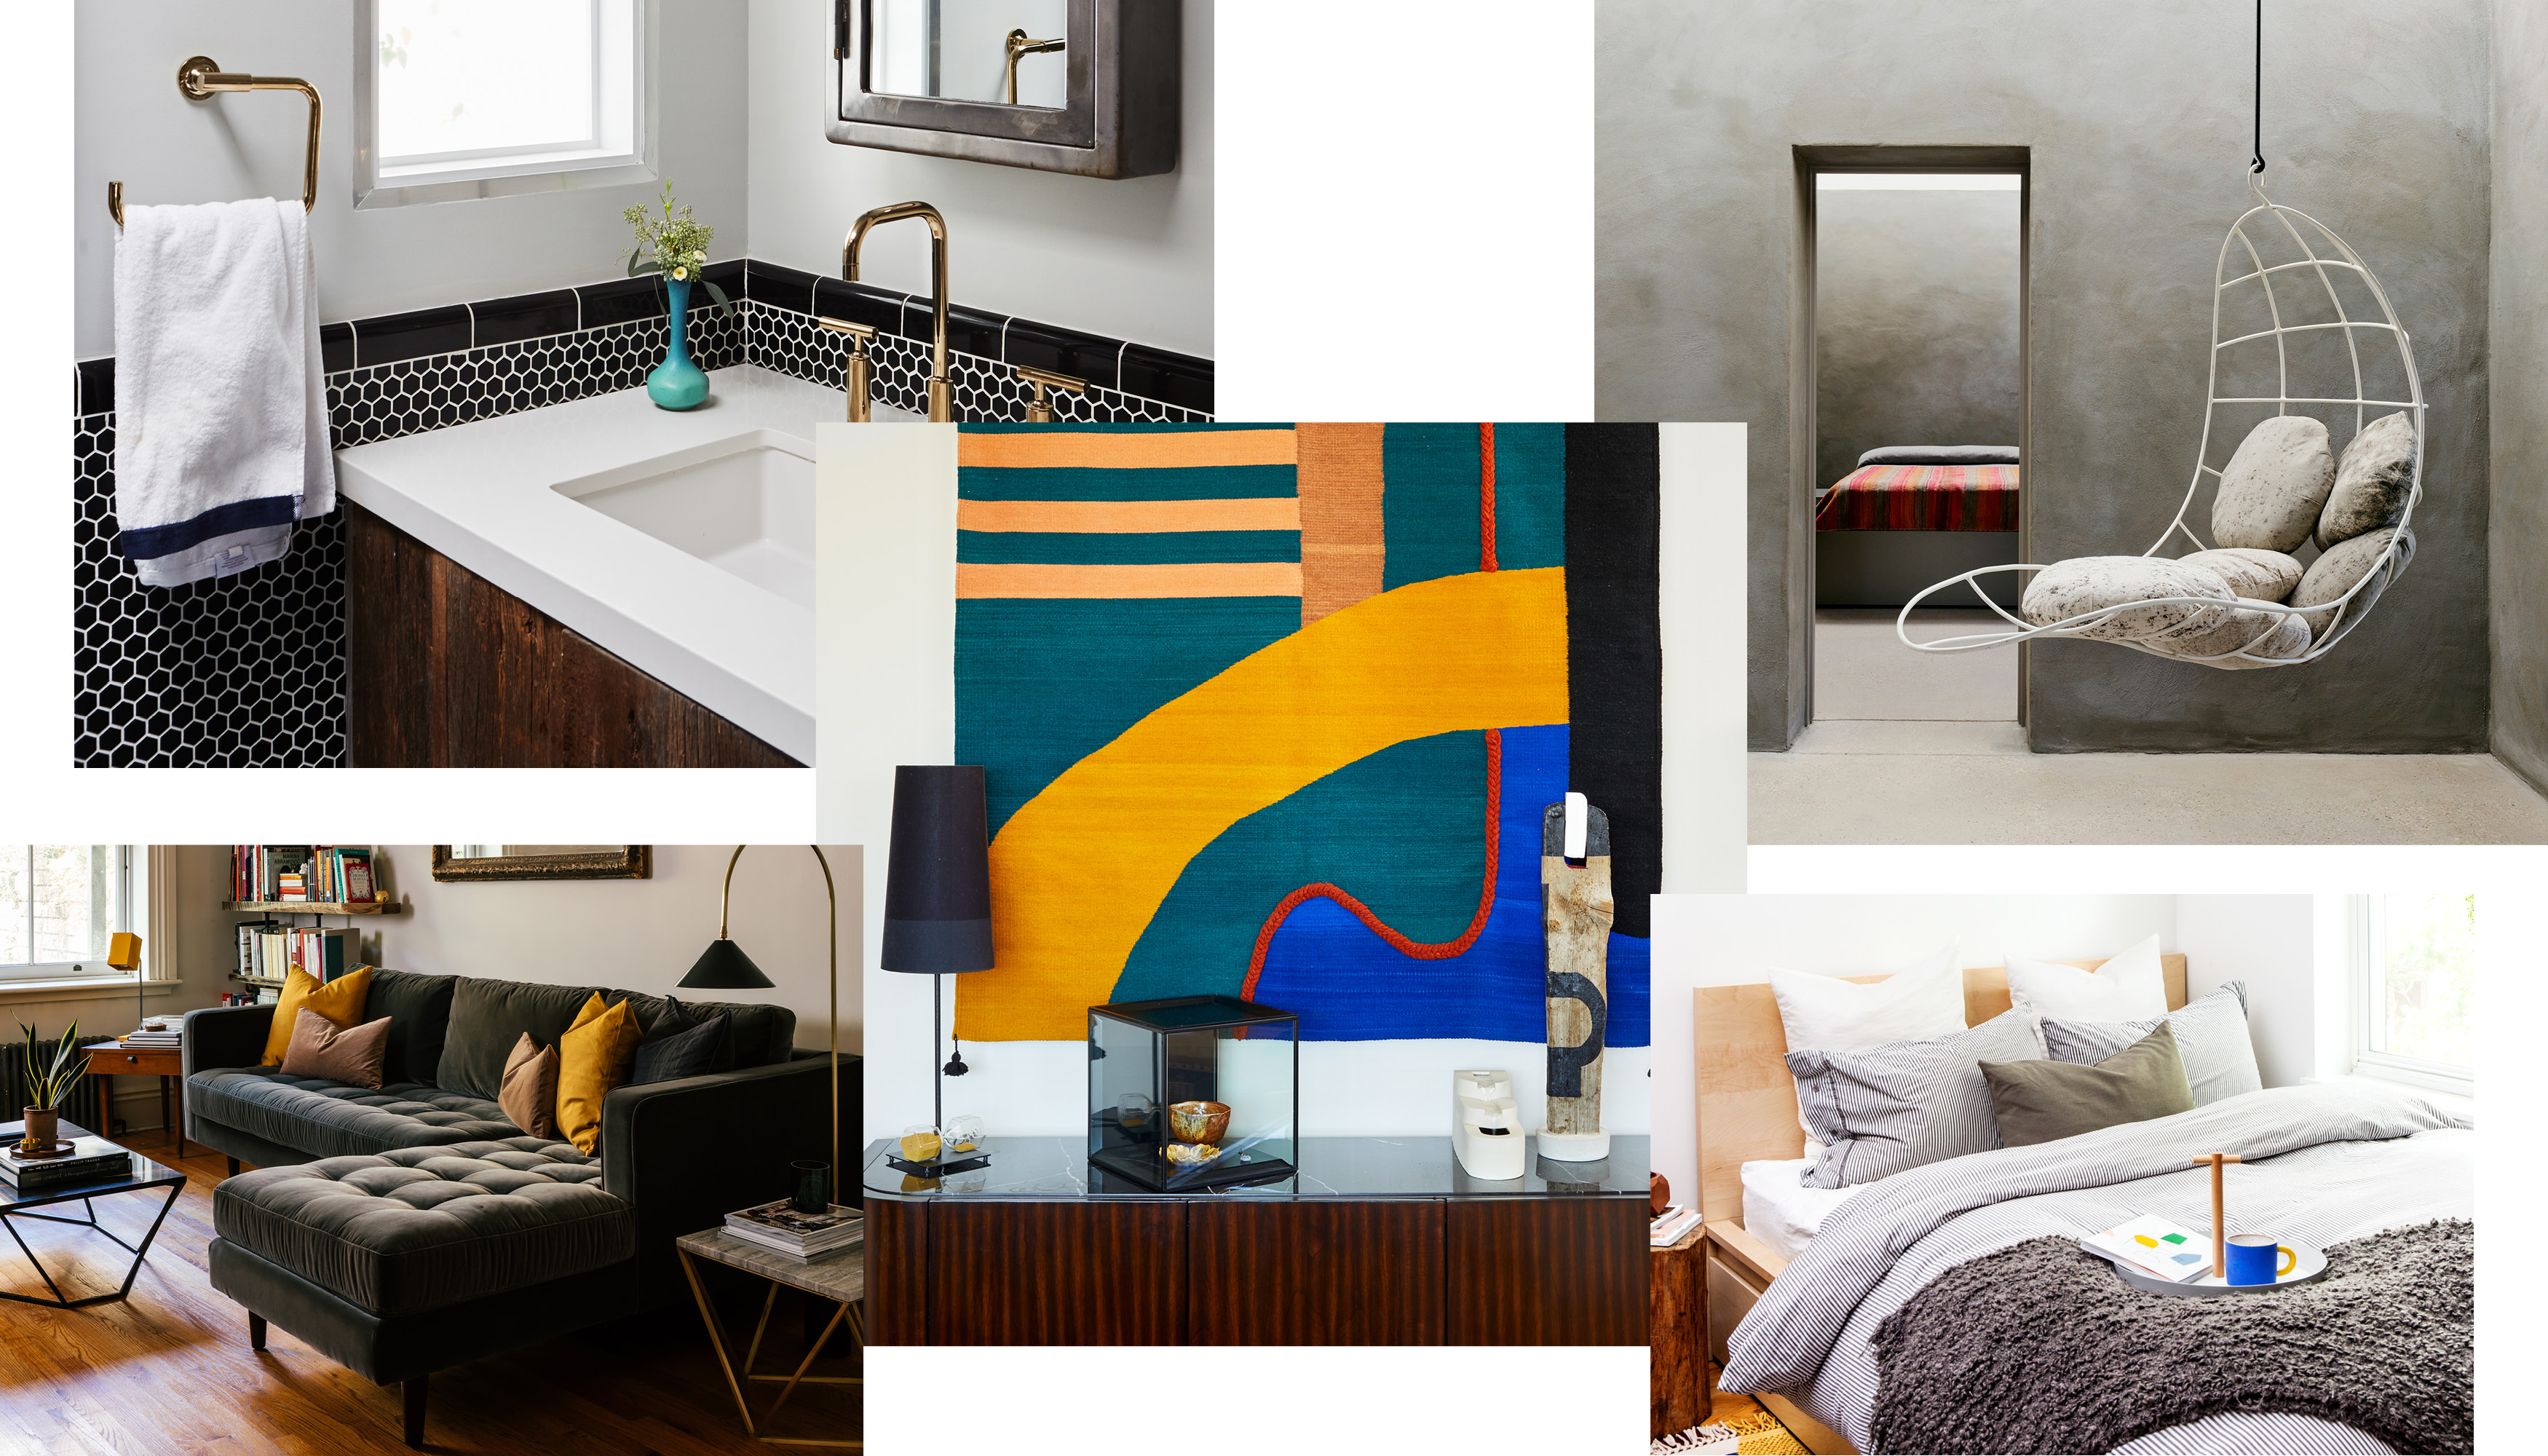 A collage of photographs featuring a bathroom with black and white penny tile, white sink, and brass fixtures; a minimalist bedroom with textured gray walls; a bed with gray duvet, chunky knitted blanket, and tray with a blue mug; a living room with a gray tufted sofa; and a wood consile with a teal and yellow wall hanging above it.